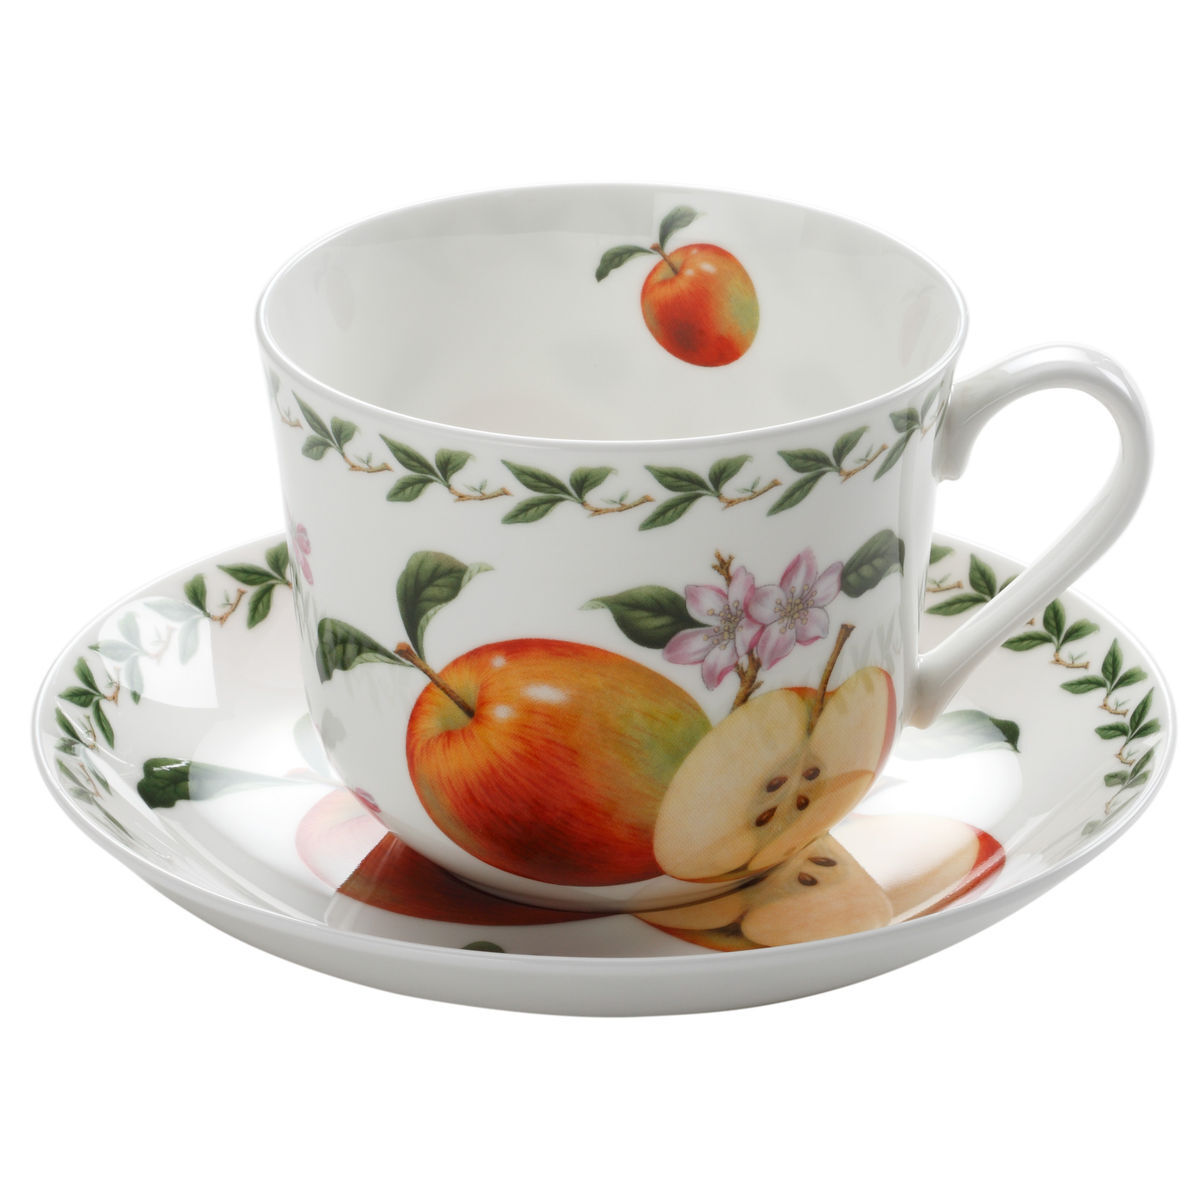 maxwell williams tasse mit untertasse orchard fruits. Black Bedroom Furniture Sets. Home Design Ideas